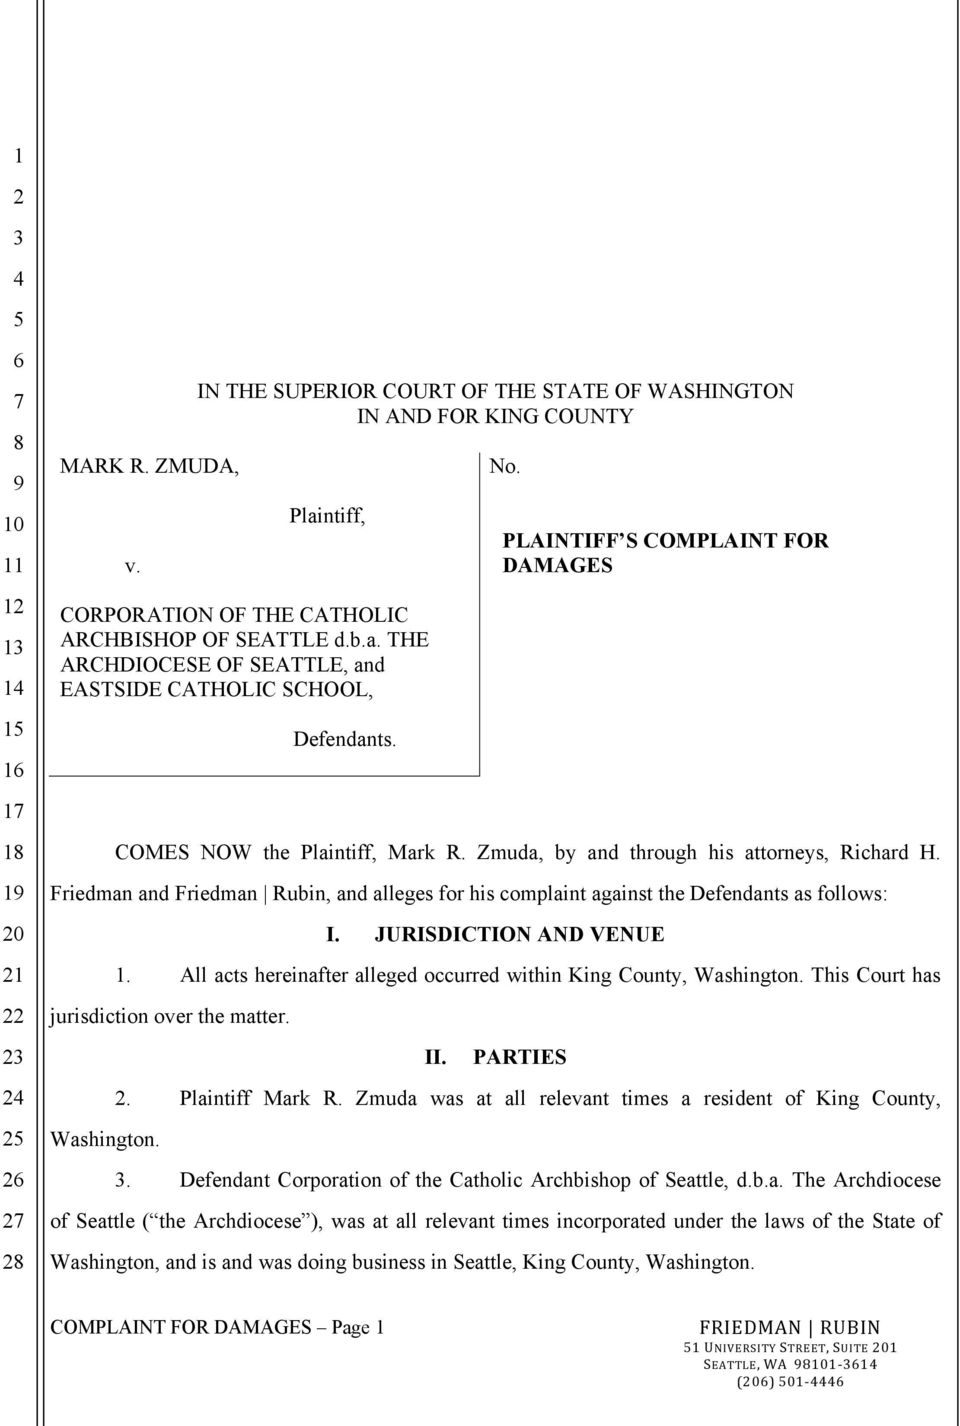 Friedman and Friedman Rubin, and alleges for his complaint against the Defendants as follows: I. JURISDICTION AND VENUE 1. All acts hereinafter alleged occurred within King County, Washington.